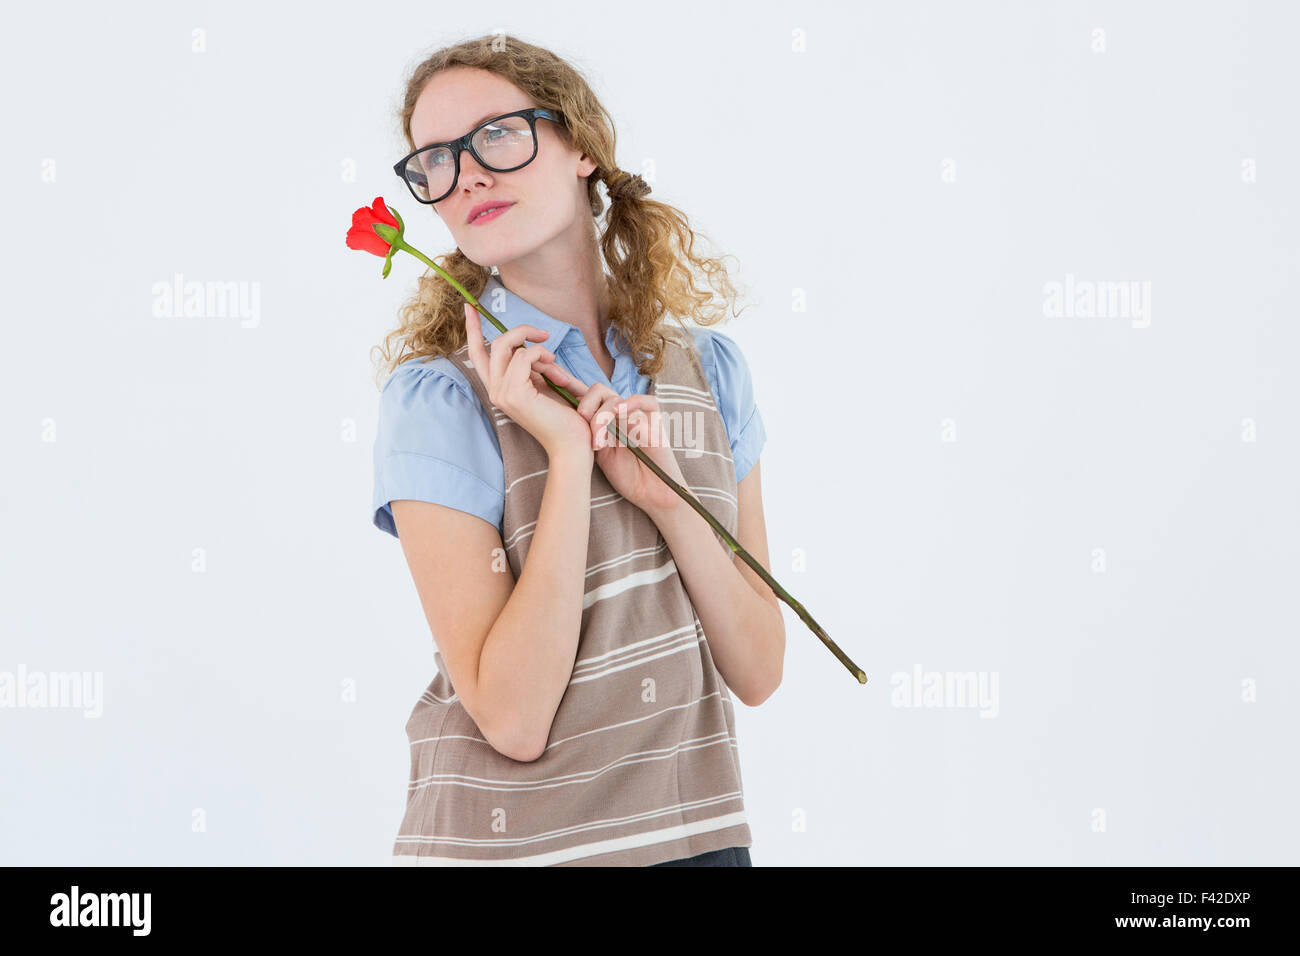 Geeky hipster woman holding rose - Stock Image